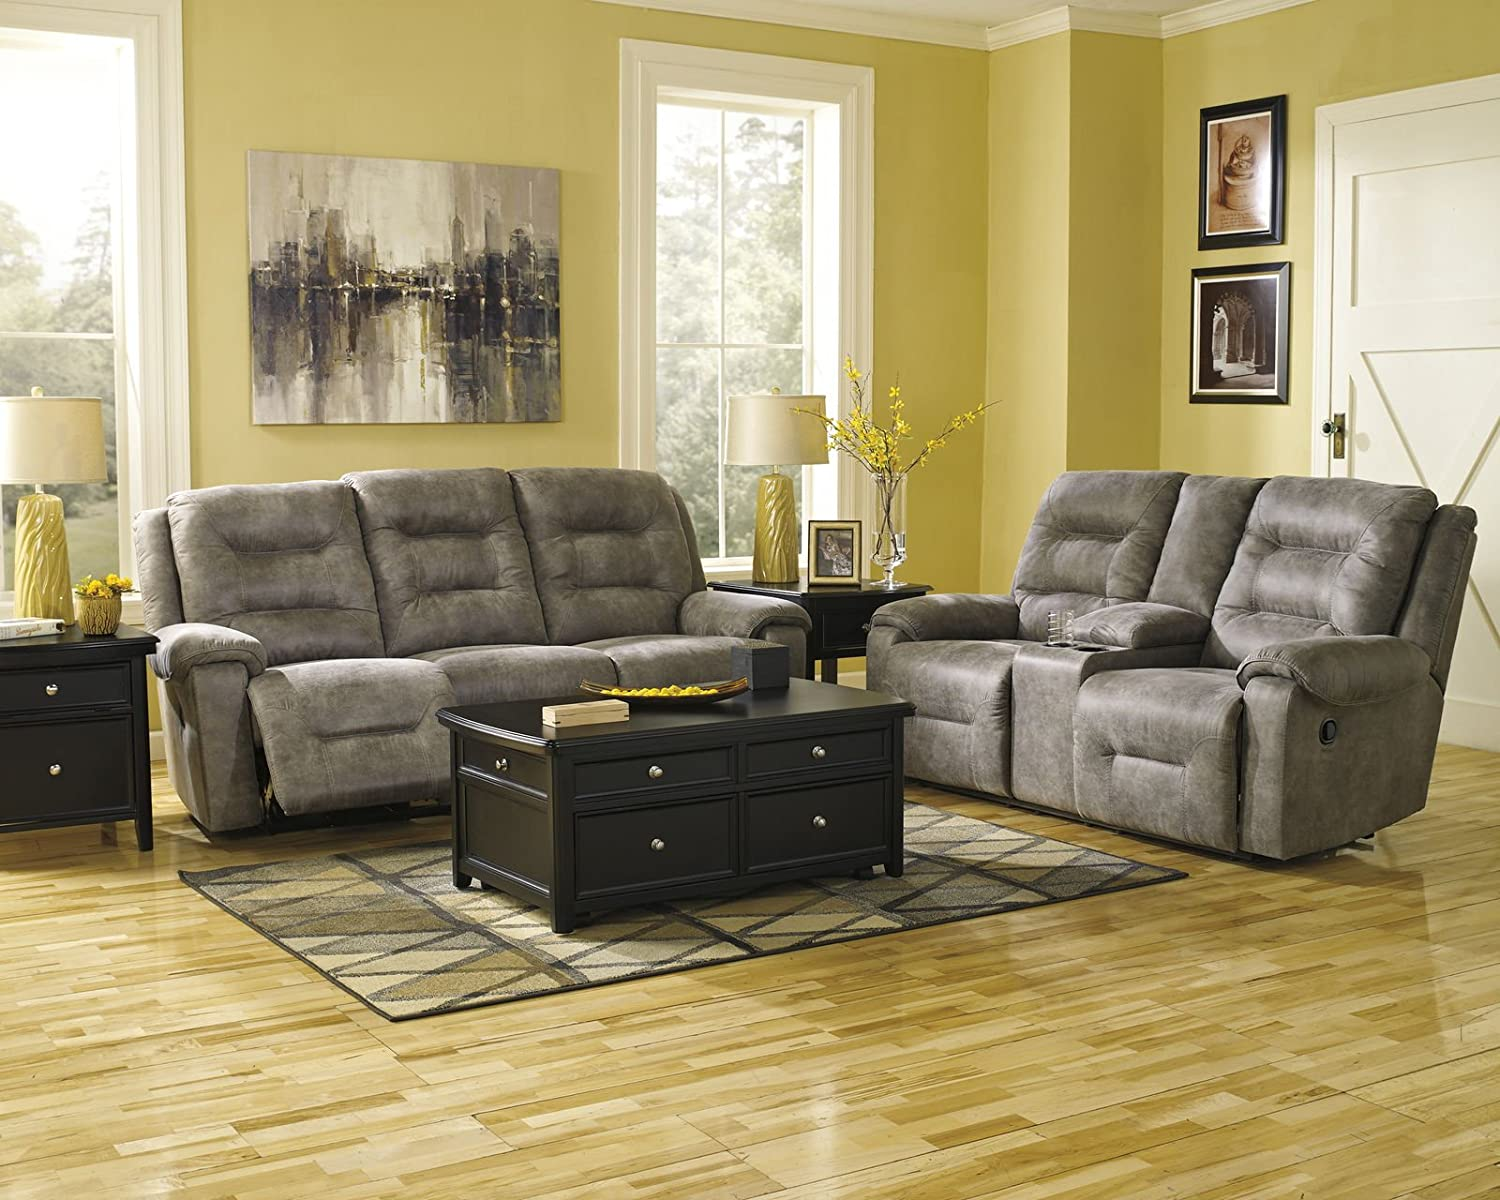 Amazon.com Ashley Furniture Signature Design - Rotation Recliner Sofa - Manual Reclining Couch - Smoke Gray Kitchen u0026 Dining & Amazon.com: Ashley Furniture Signature Design - Rotation Recliner ... islam-shia.org